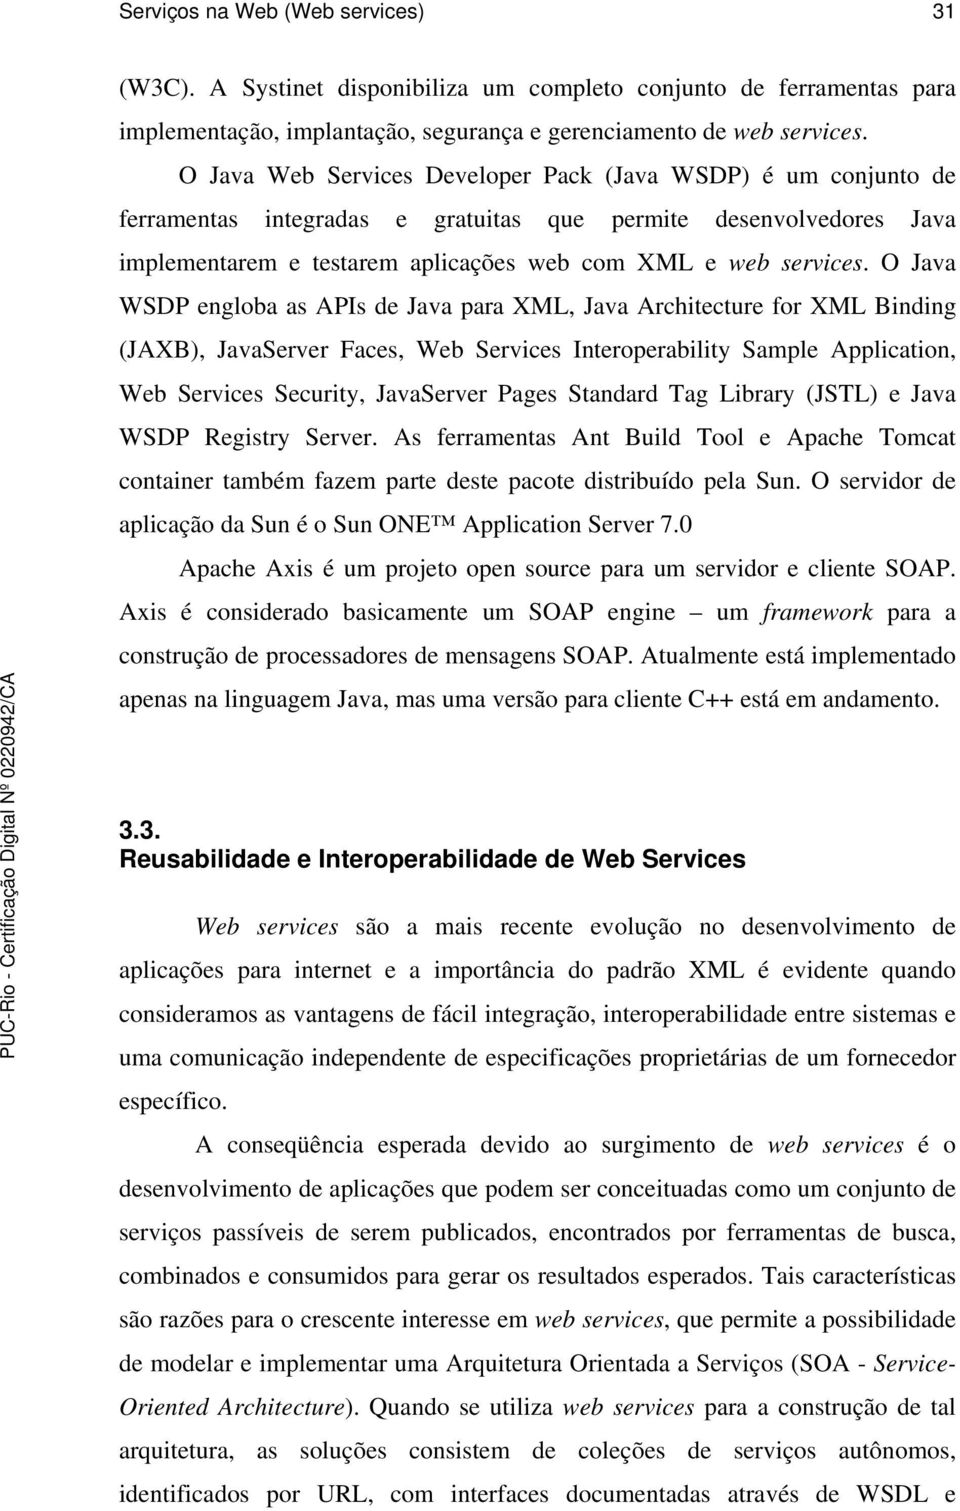 O Java WSDP engloba as APIs de Java para XML, Java Architecture for XML Binding (JAXB), JavaServer Faces, Web Services Interoperability Sample Application, Web Services Security, JavaServer Pages